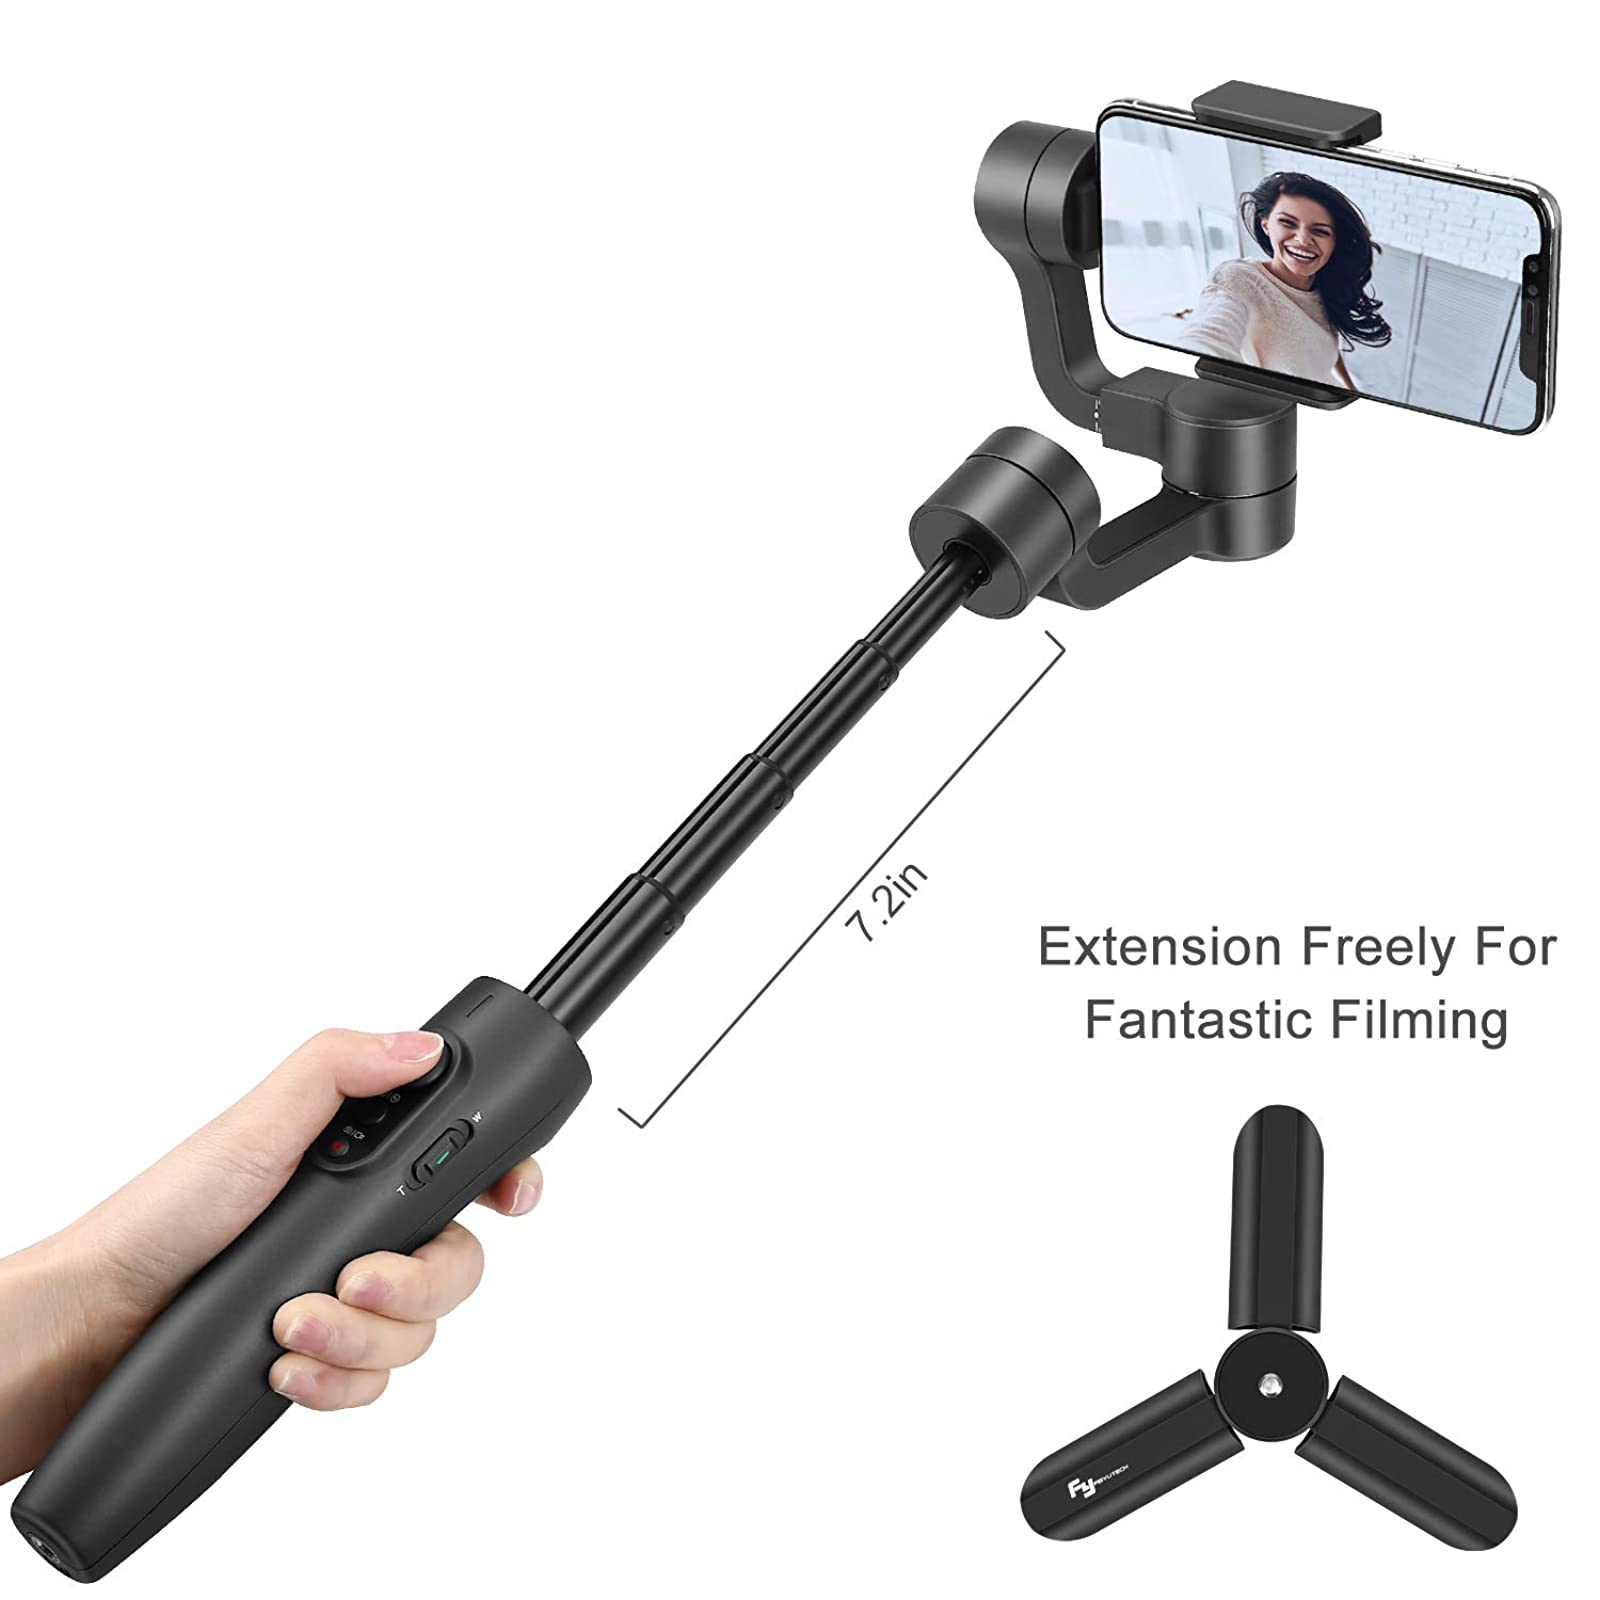 FeiyuTech Vimble 2S Smartphone Gimbal 18cm Extendable Stabilizer Gimble for iPhone 11//Pro//Max and Android Phones Dolly Zoom Selfie-Stick Remote Control with FeiyuOn App Vimble2S